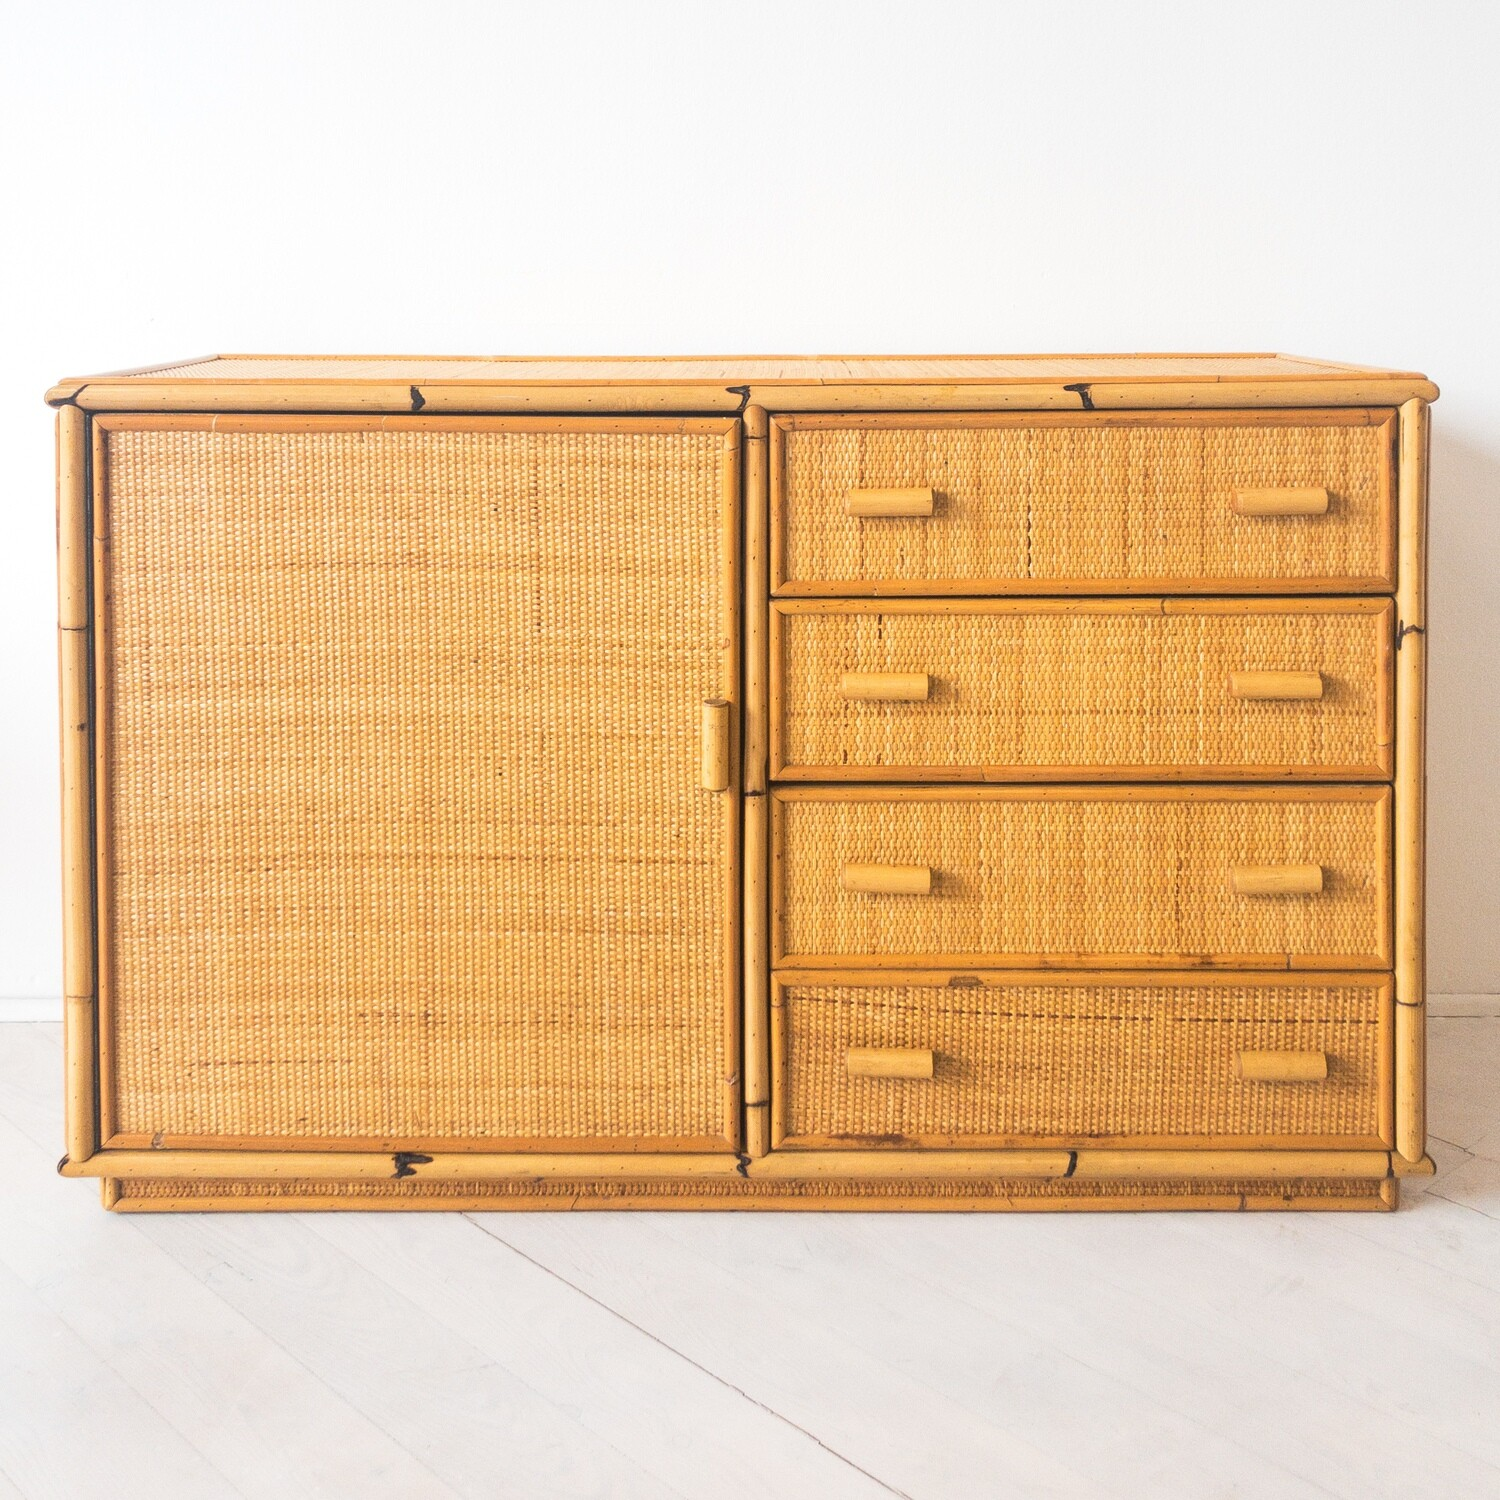 Sideboard in bamboo and rush, 1970s